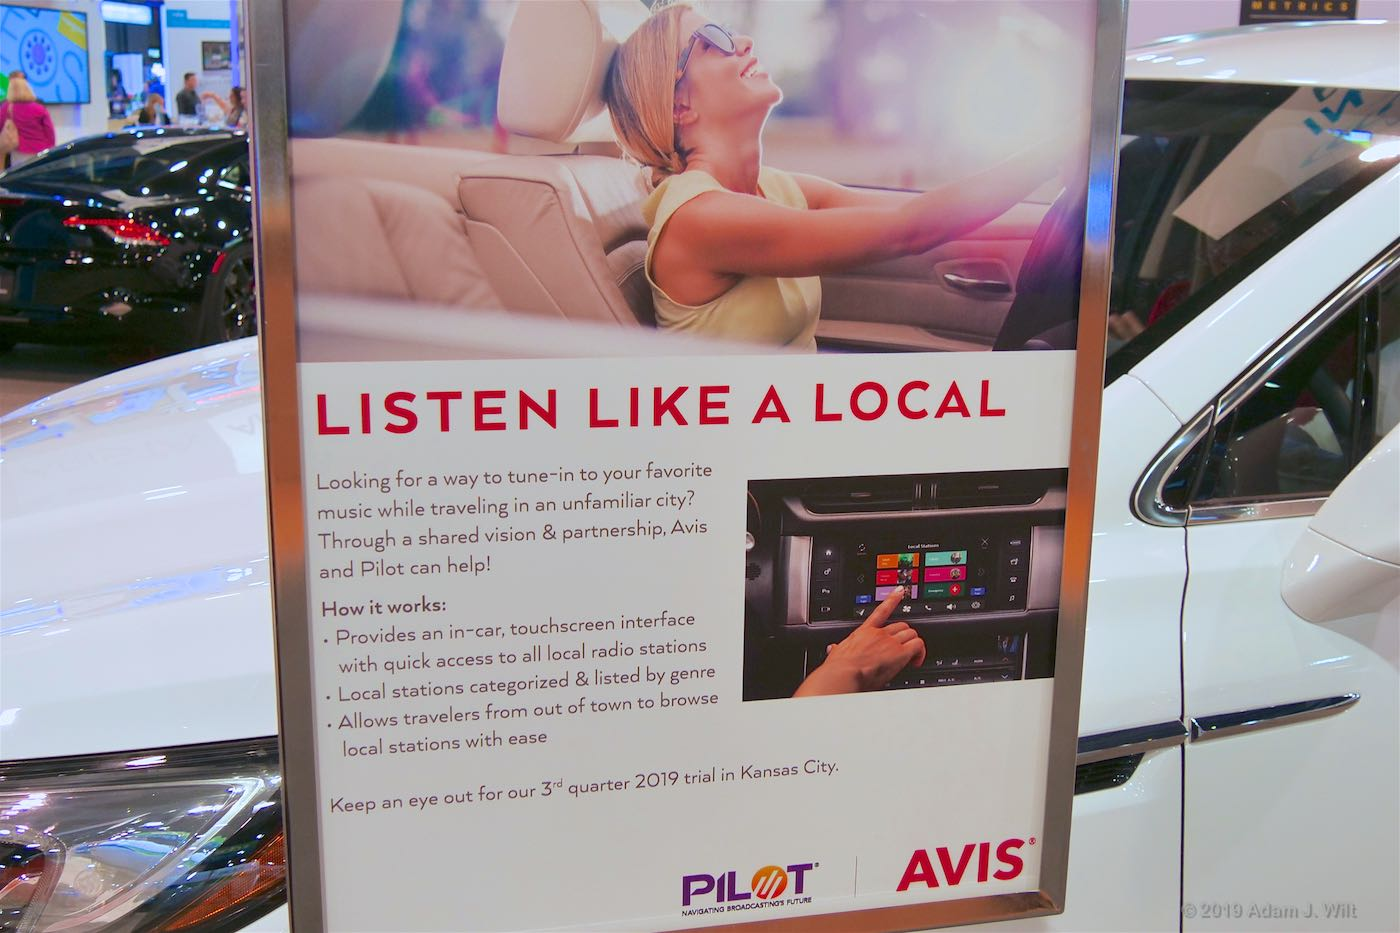 The AVIS PILOT radio experience